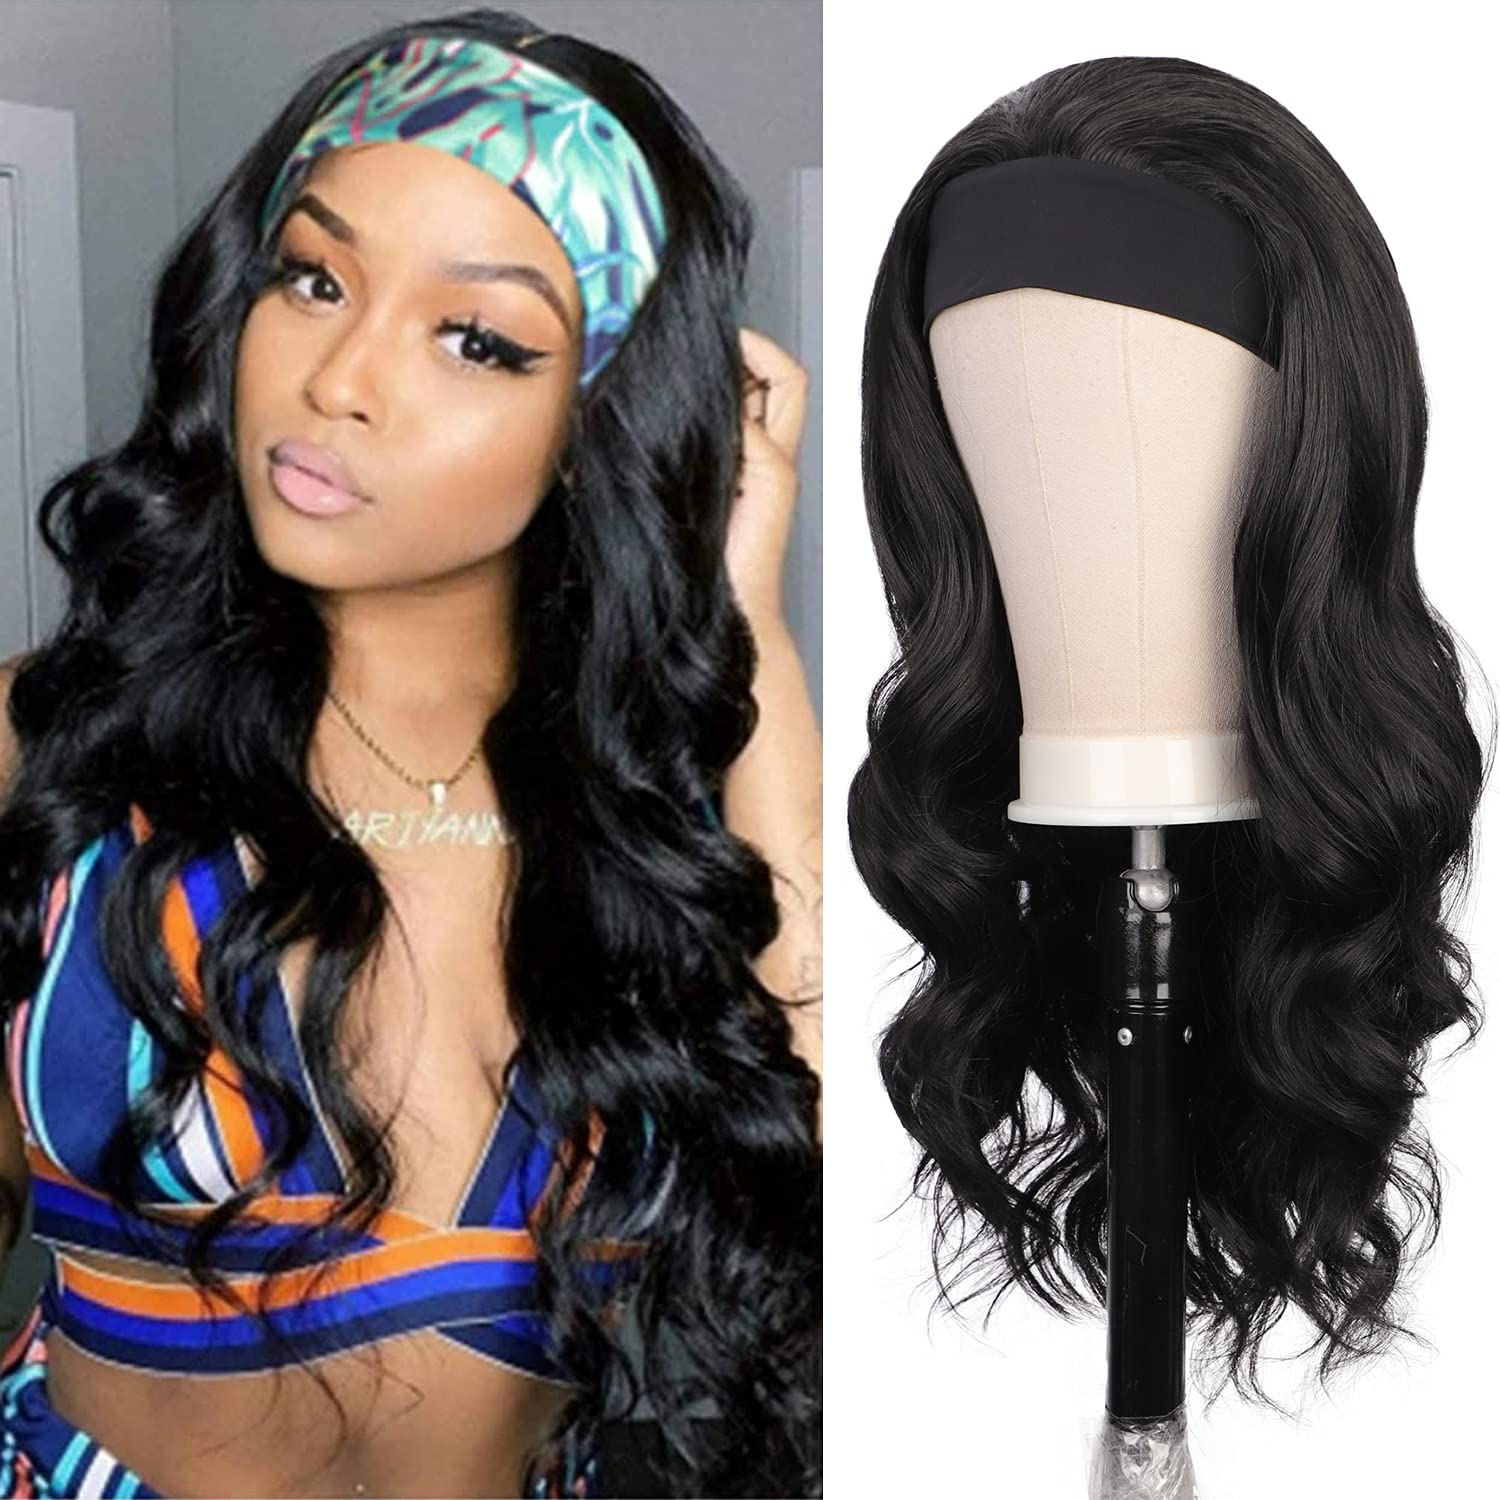 Headband Wig Human online shopping Hair for Wigs Recommended Women Body Glu Black